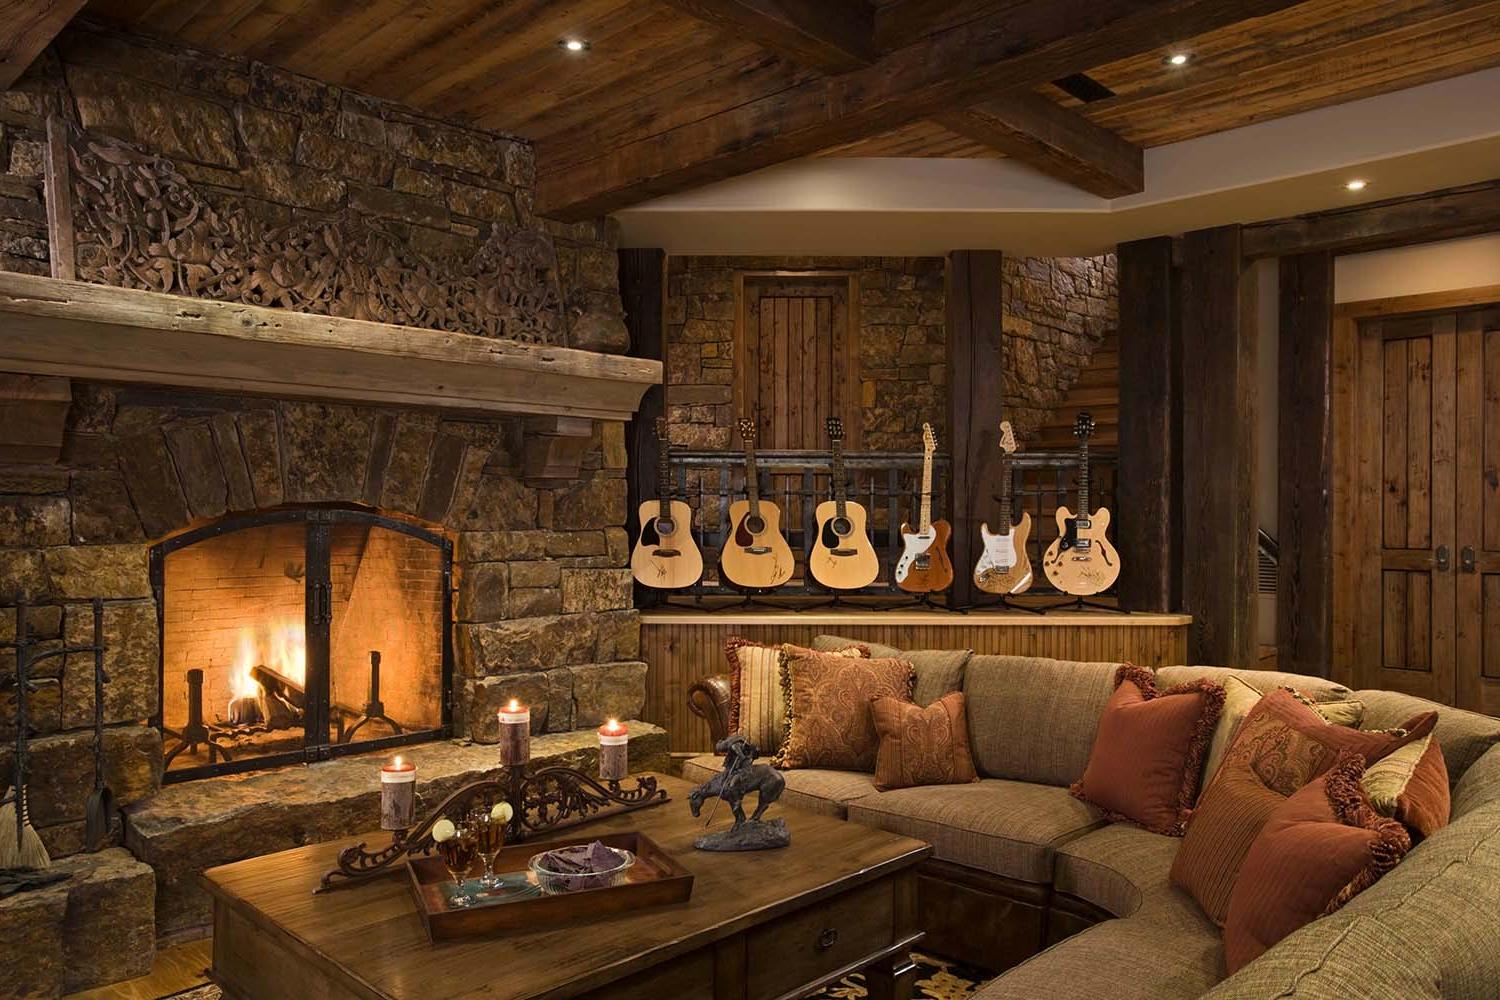 Cozy rustic living room furniture